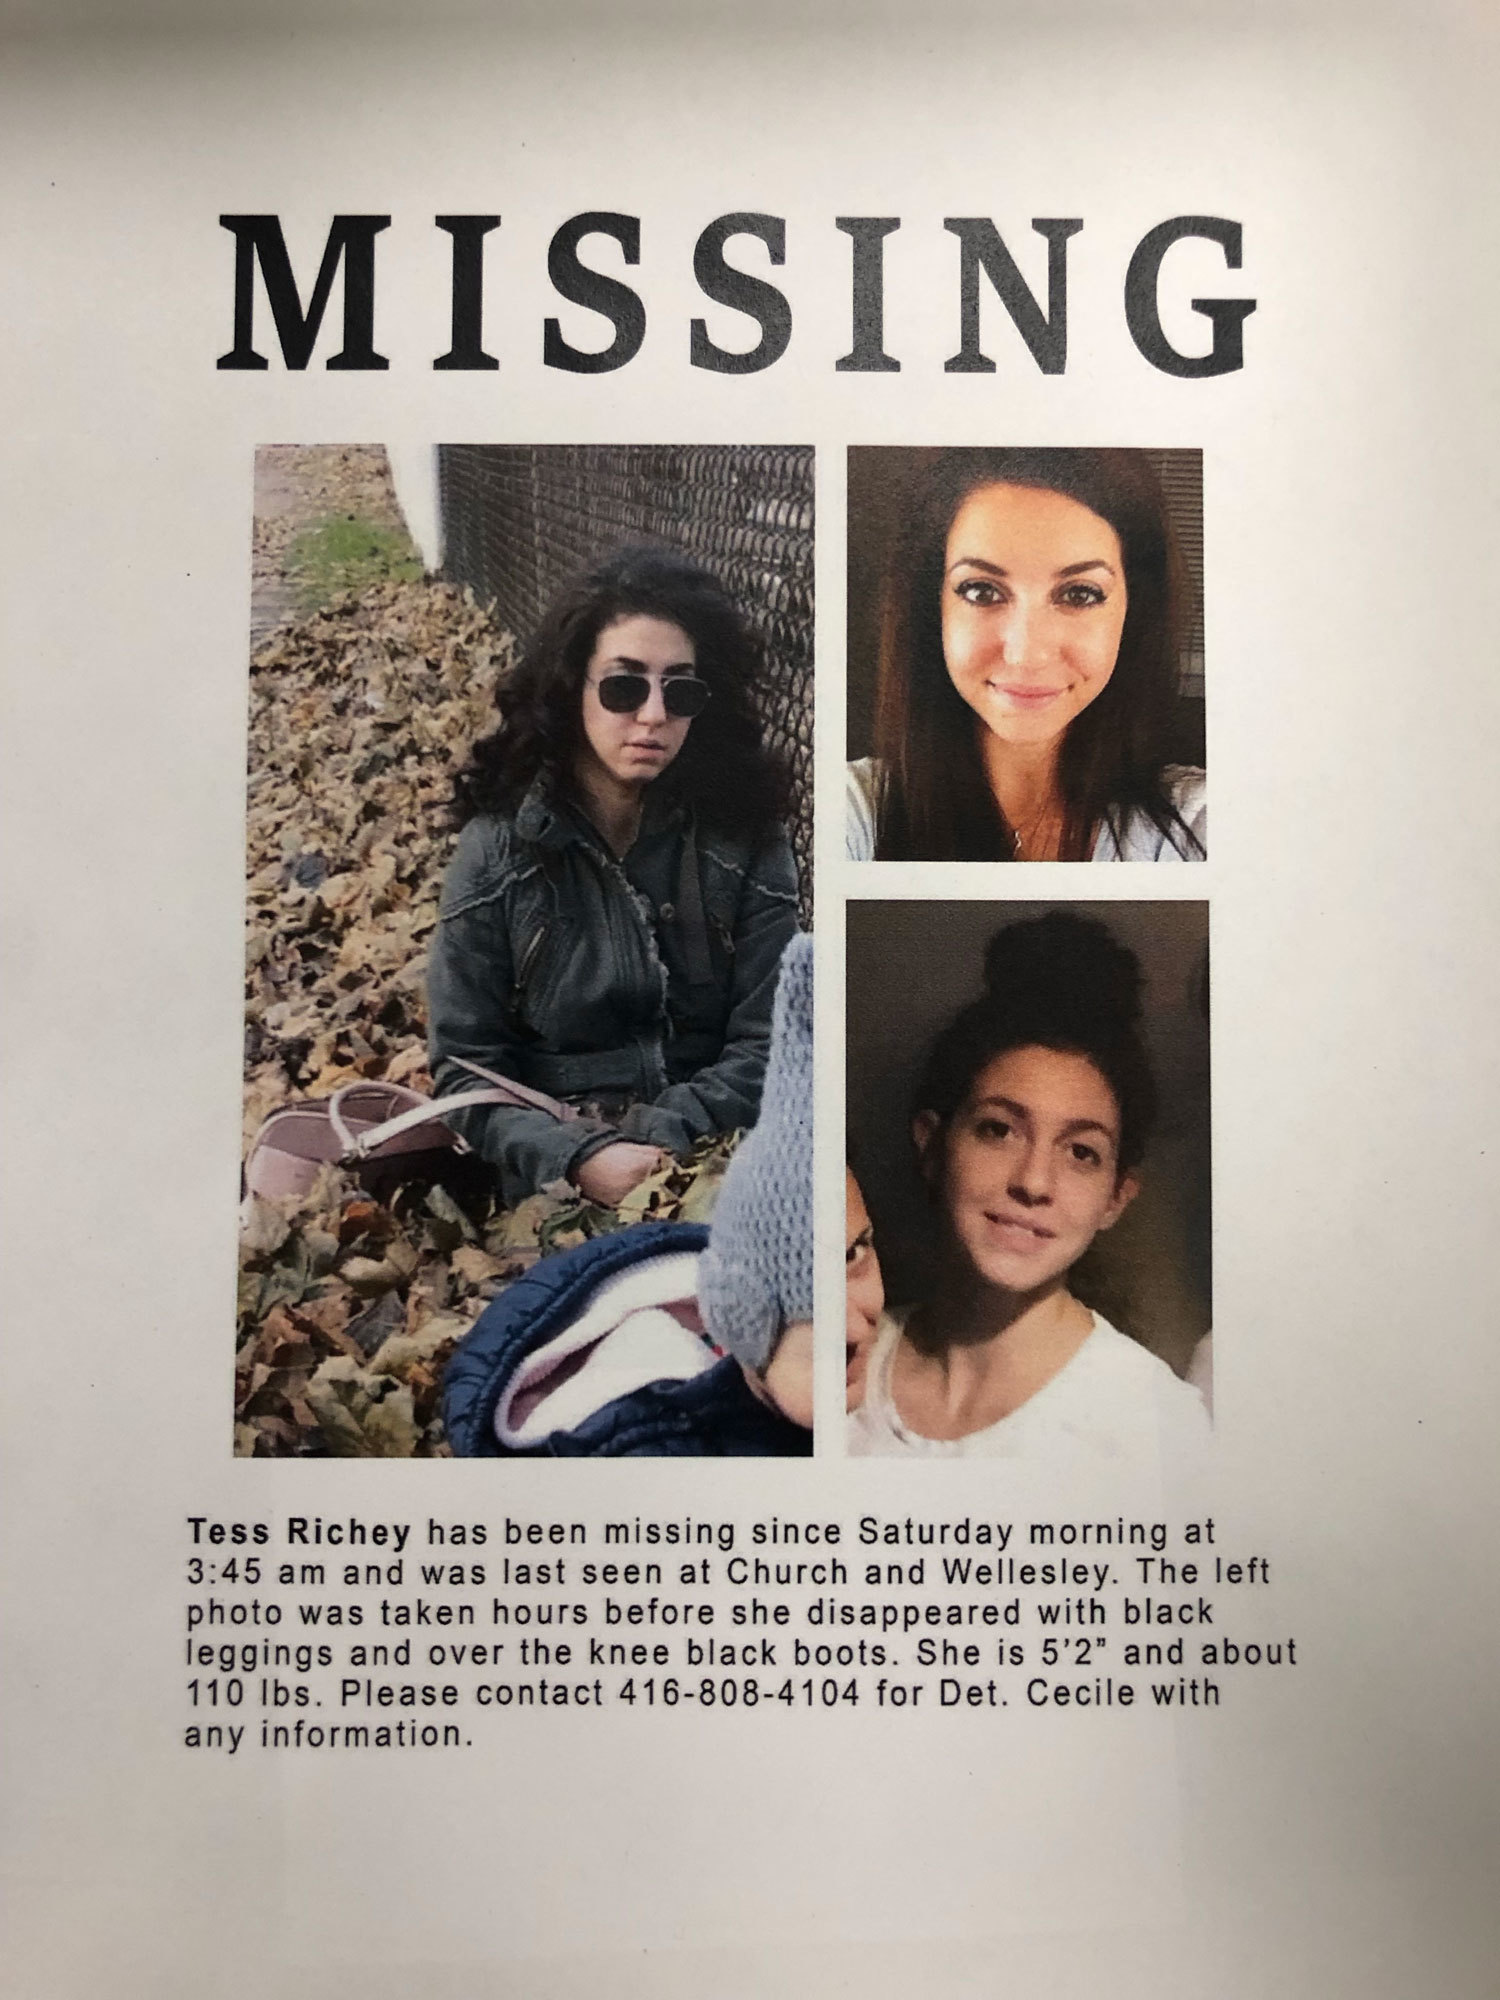 Richey's family distributed these posters in an effort to find her. (Court exhibit)